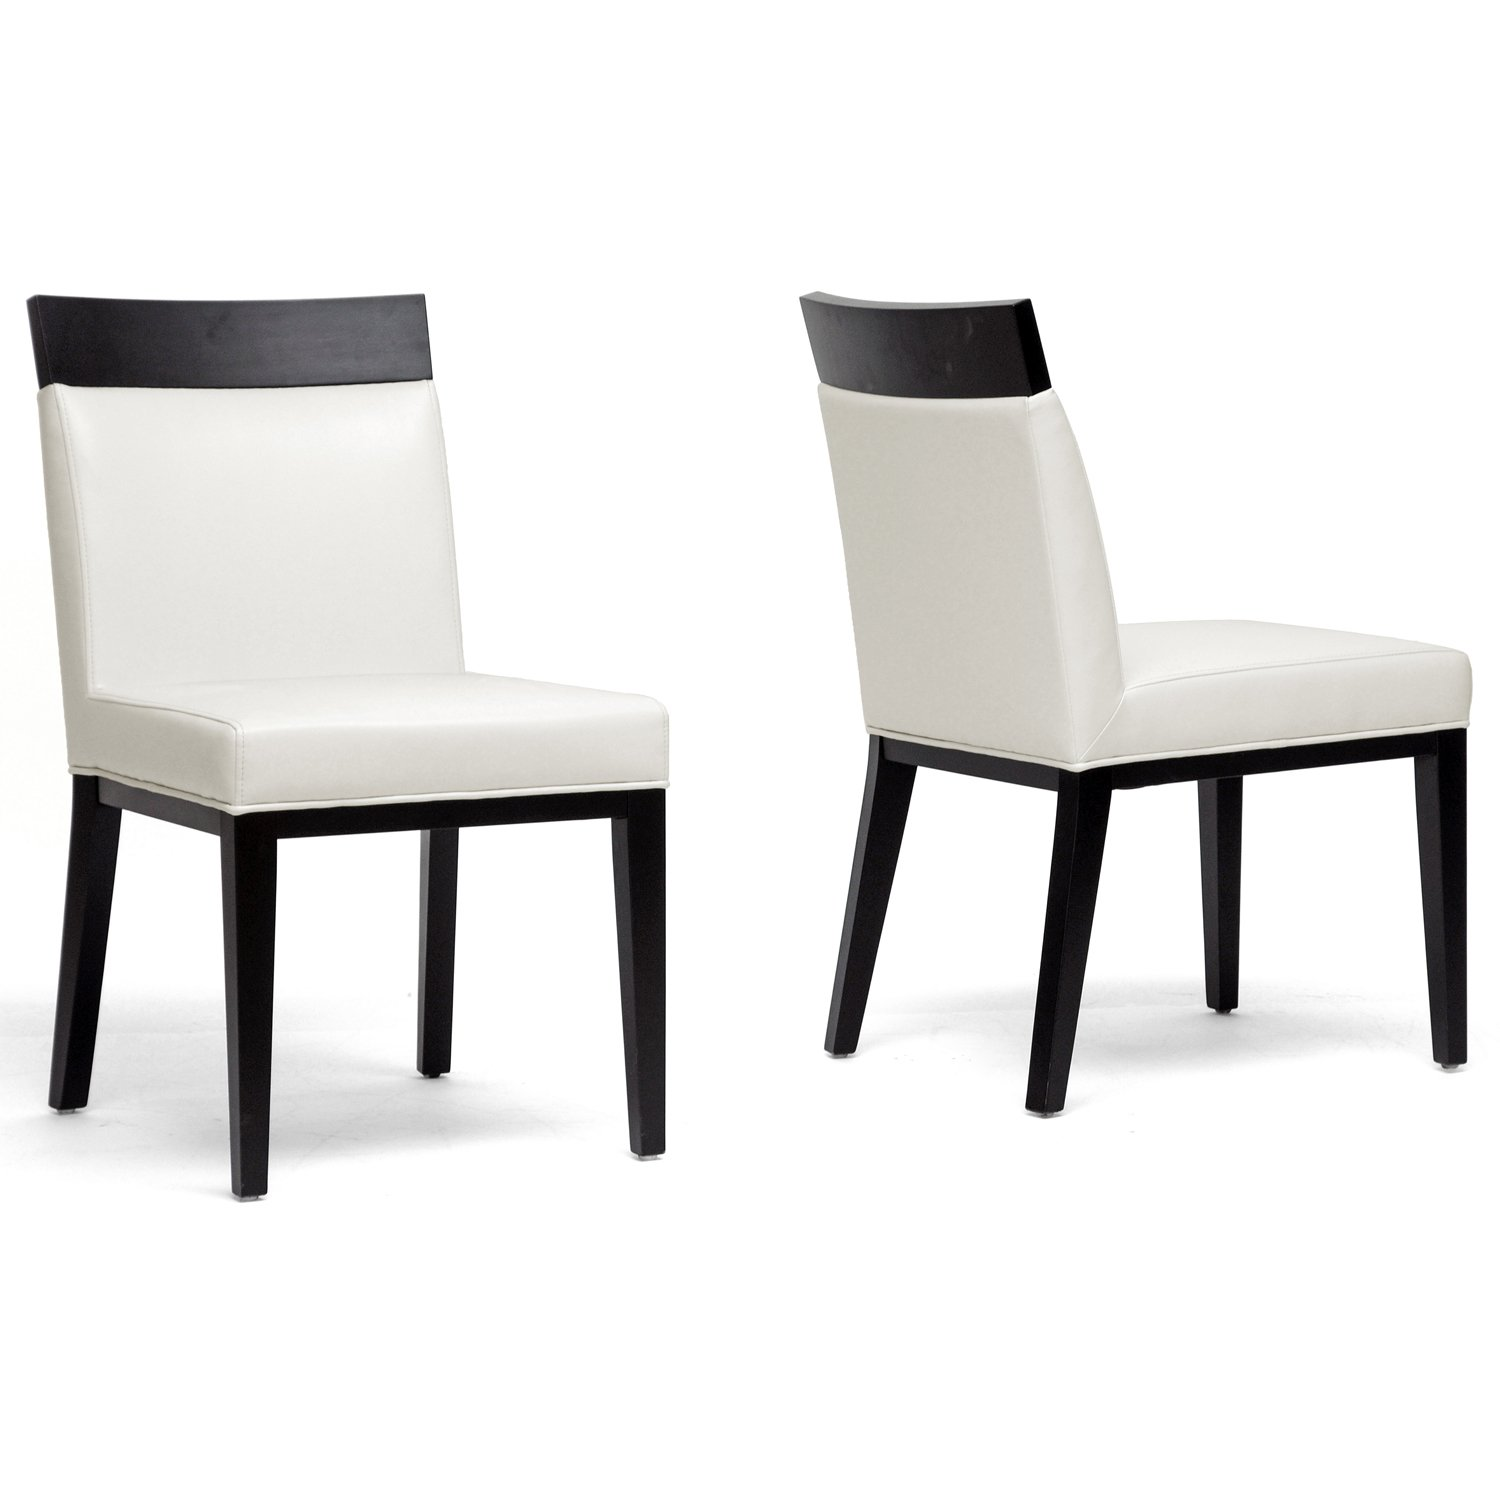 Amazon.com   Baxton Studio Clymene Black Wood And Cream Leather Modern Dining  Chair, Set Of 2   Chairs